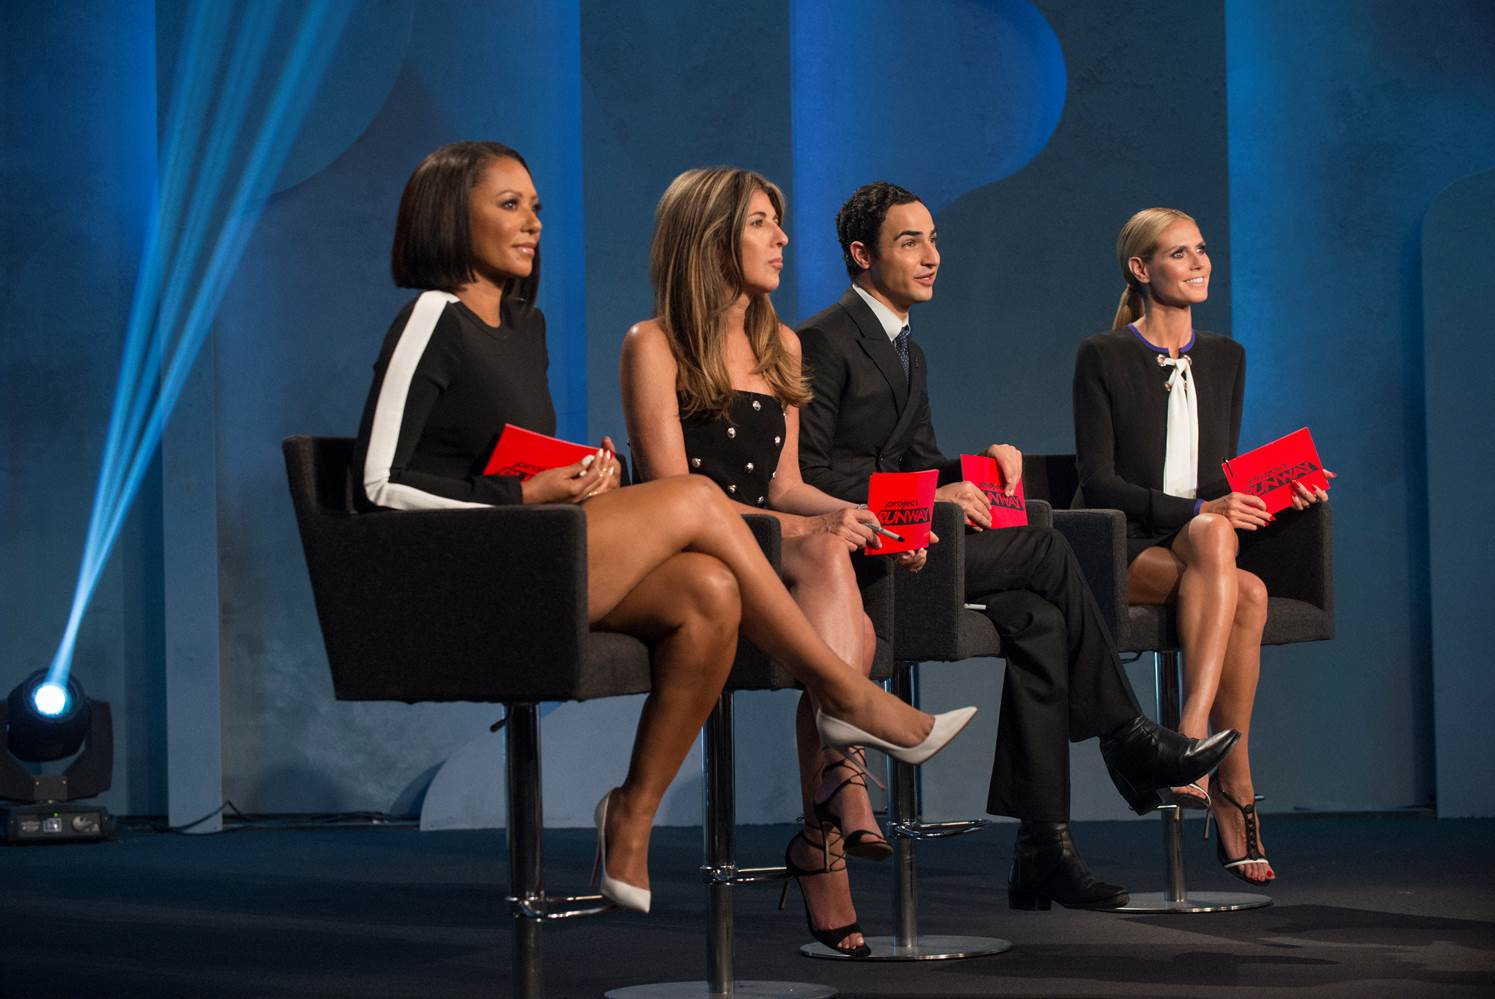 Mel B  Gets Critical as a Guest Judge on Project Runway  VIDEO      TV     Mel B  Gets Critical as a Guest Judge on Project Runway  VIDEO